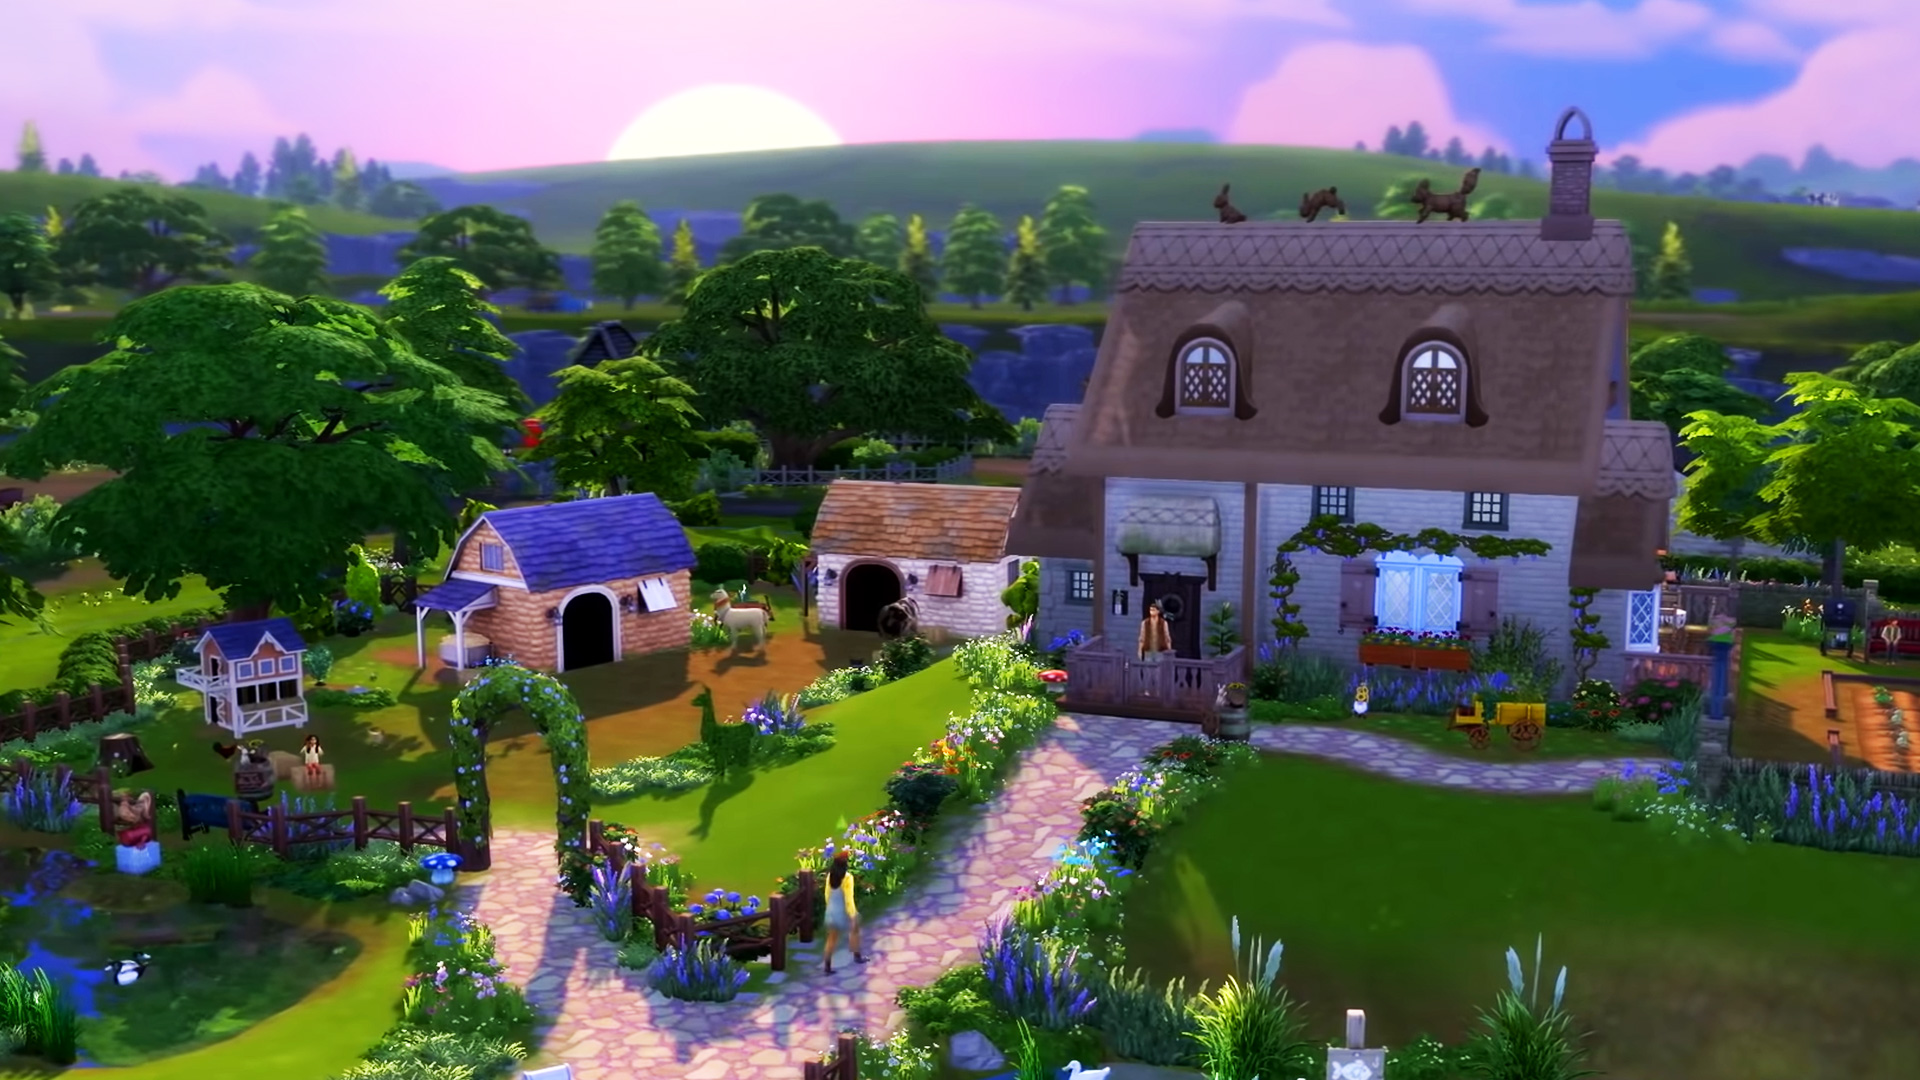 The Sims 4 Cottage Living release date, trailer, and gameplay